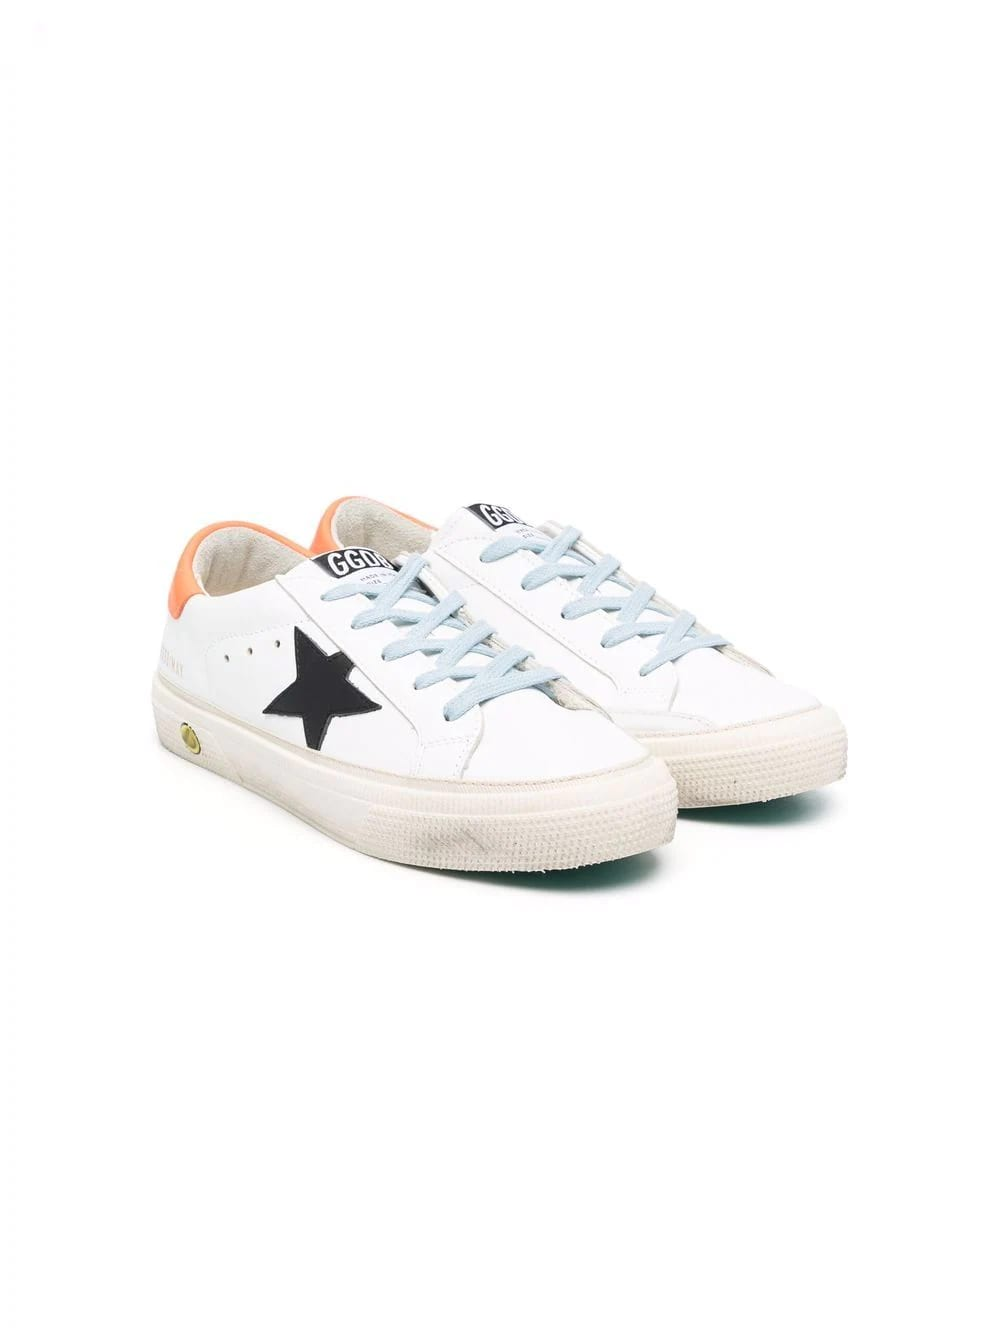 Golden Goose Junior White May Sneakers With Black Star And Orange Spoiler